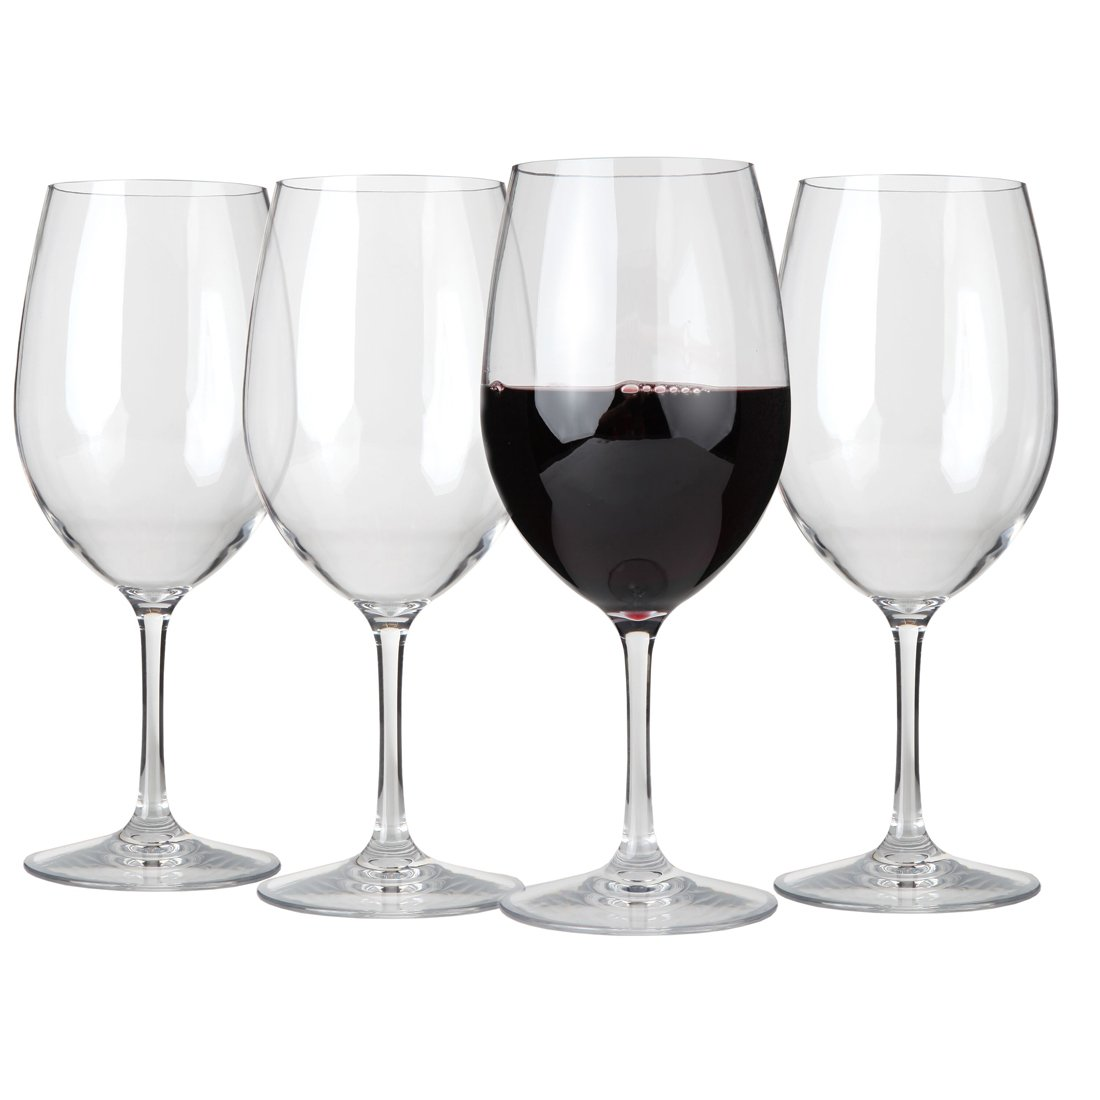 Lily's Home Unbreakable Cabernet and Merlot Bordeaux Red Wine Glasses, Made of Shatterproof Tritan Plastic, Ideal for Indoor and Outdoor Use, Reusable and Dishwasher-Safe, Crystal Clear (20 oz. Each, Set of 4)